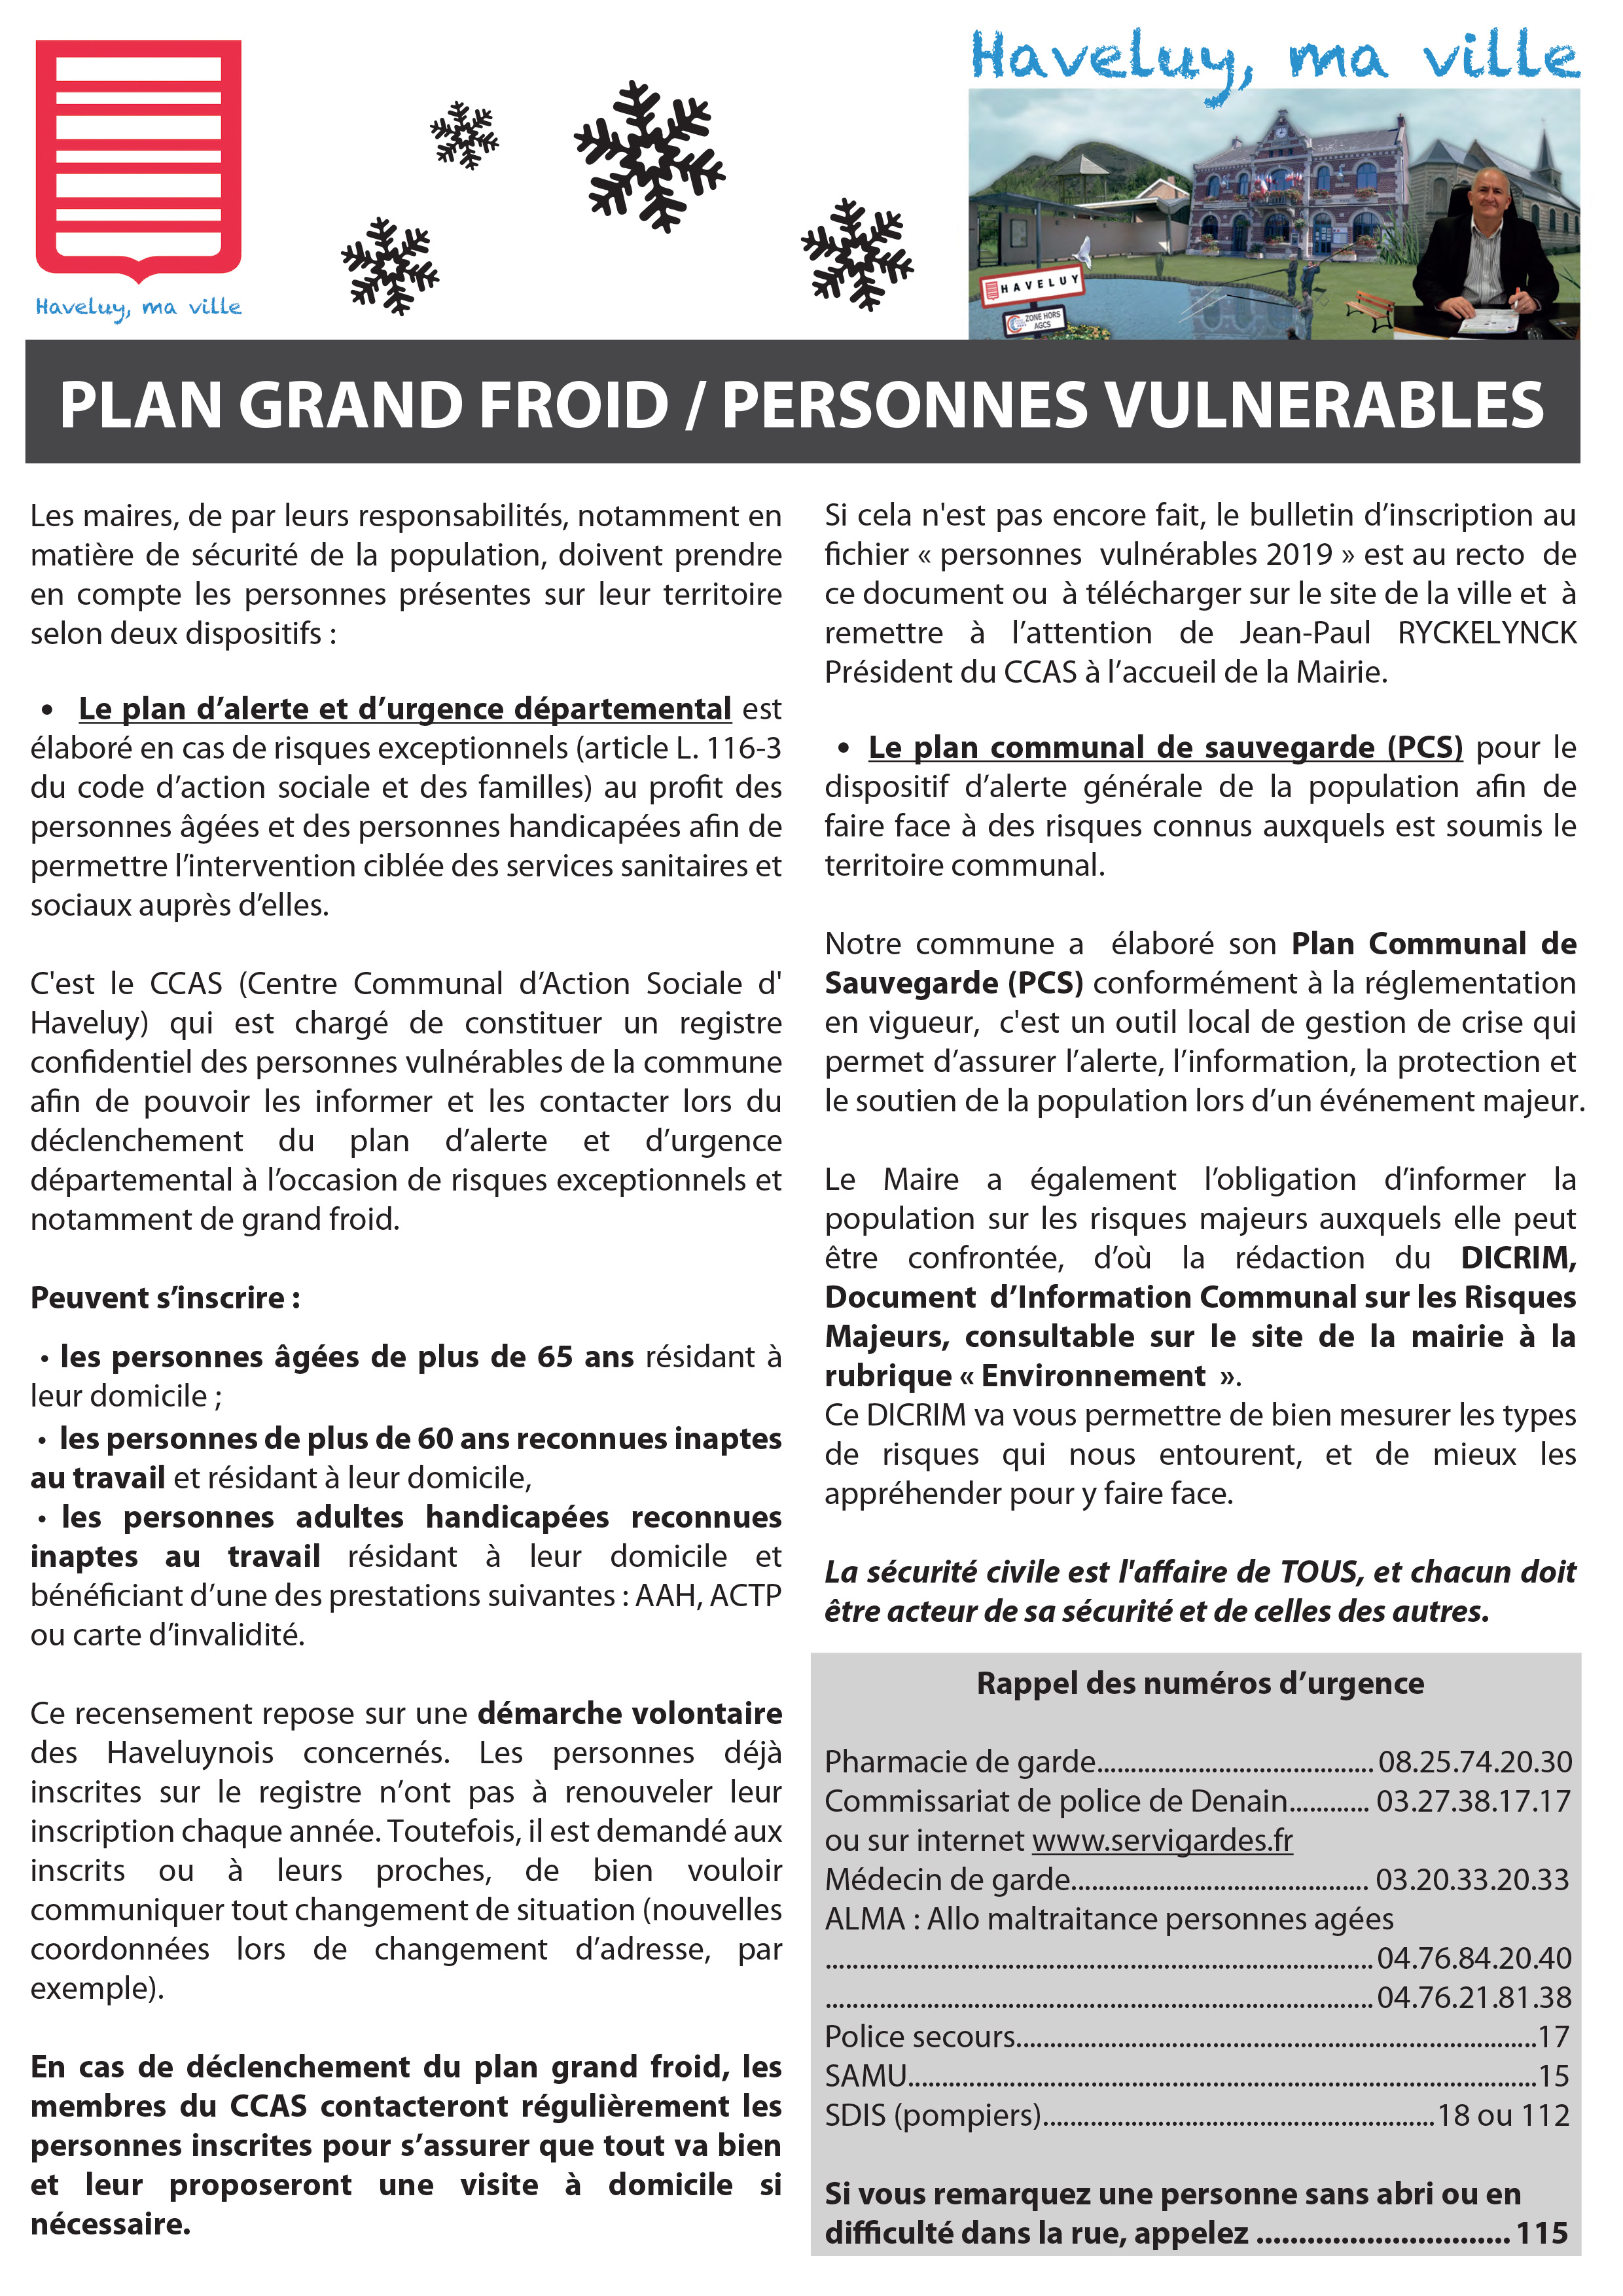 plan grand froid 2019